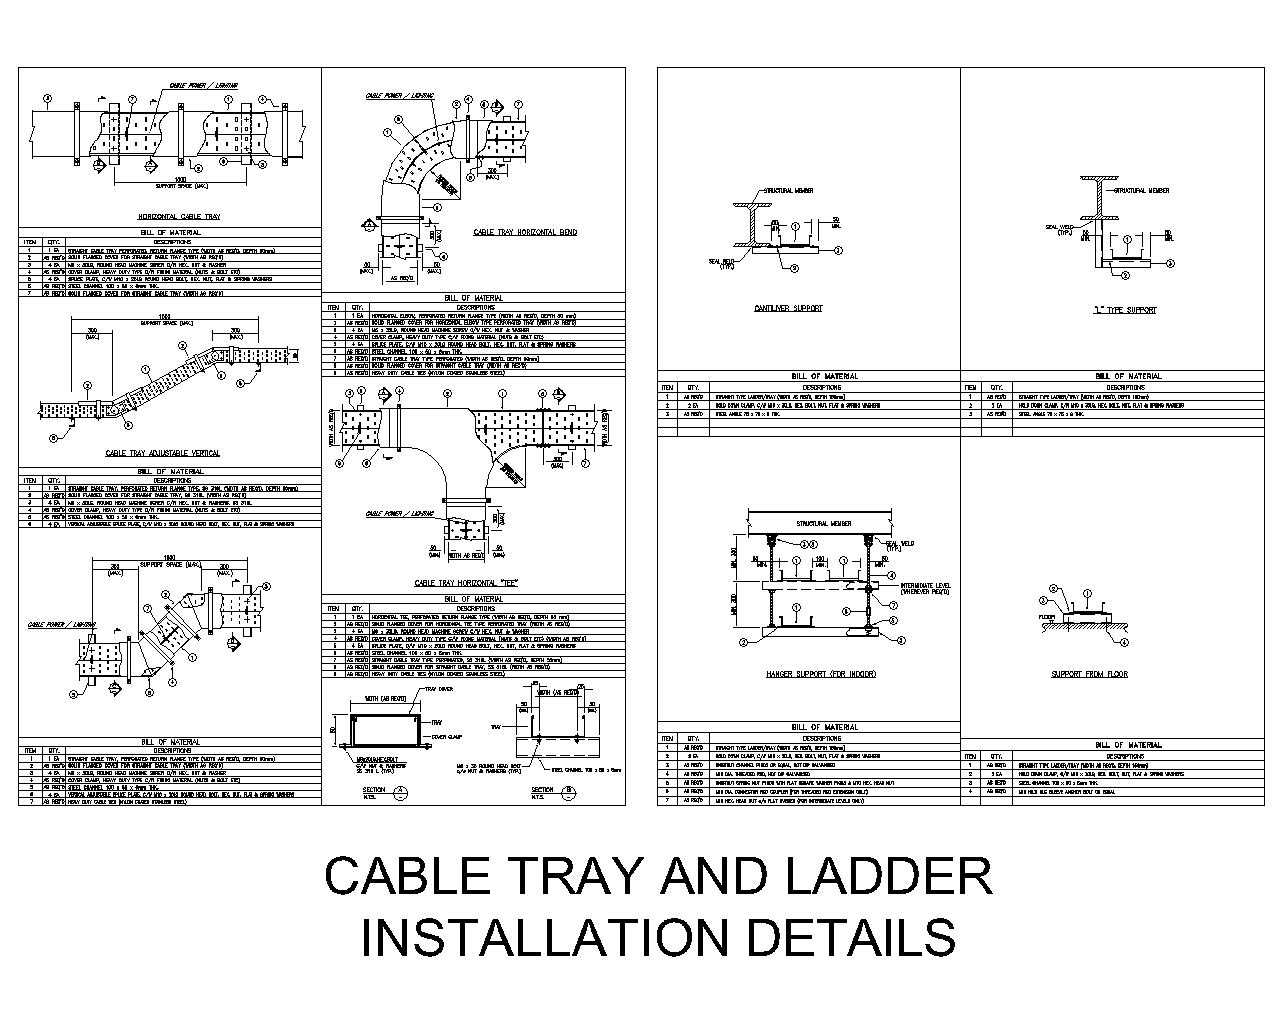 Traffic Light Ladder Diagram Schematics Data Wiring Diagrams Cable Tray And Installation Details Cad Files Dwg Plans Psim